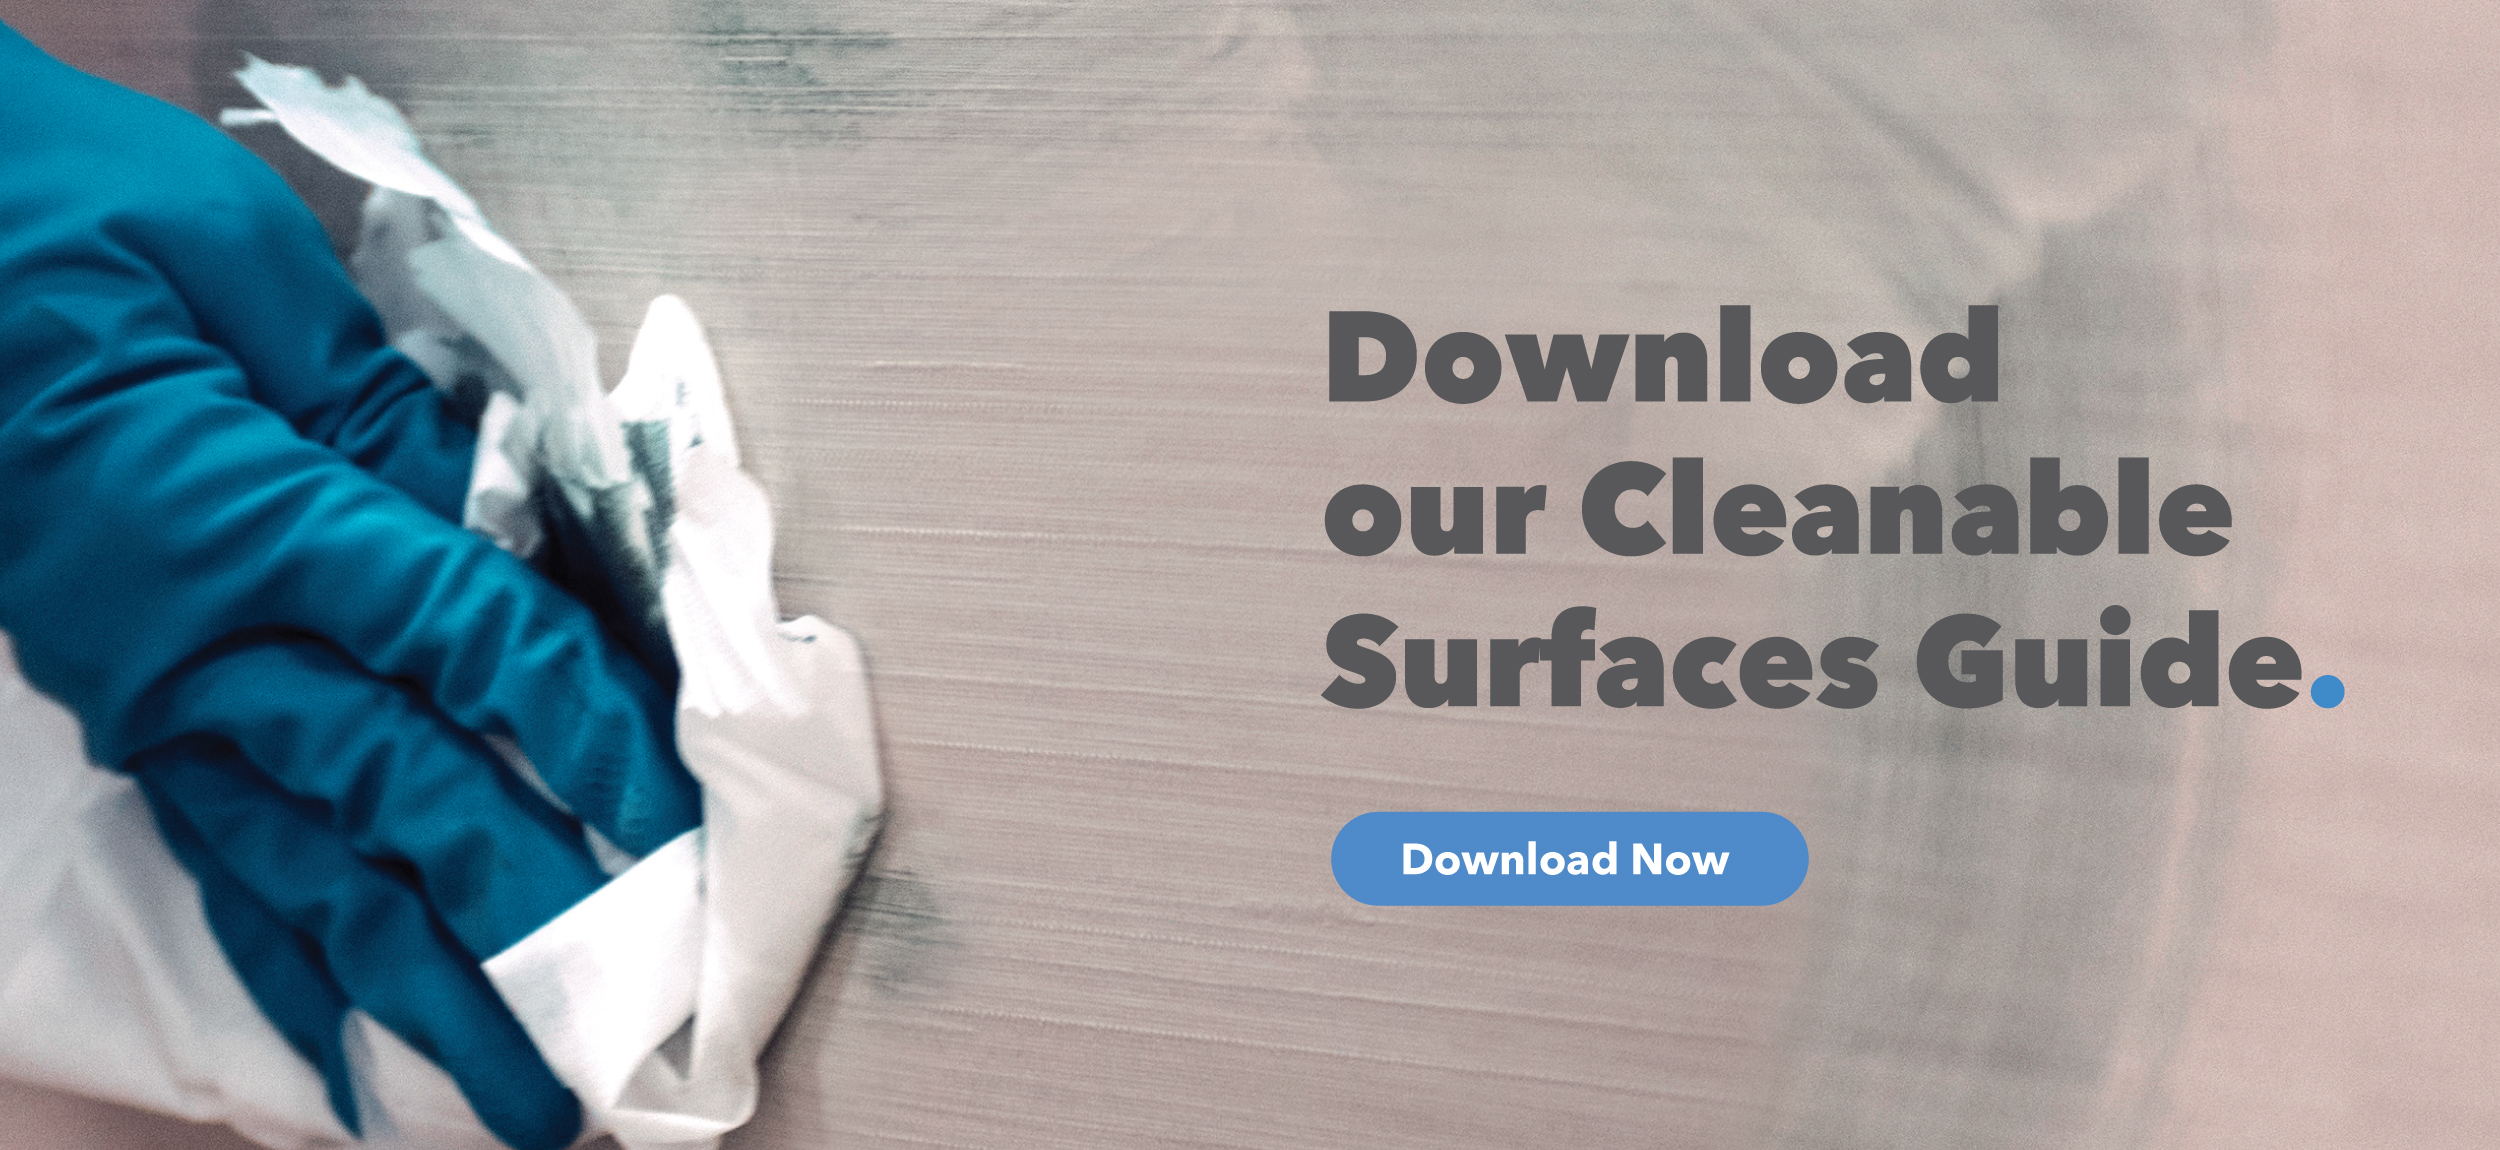 Hand wearing a blue glove cleaning a wall with copy that reads Download our Cleanable Surfaces Guide with a blue download now button